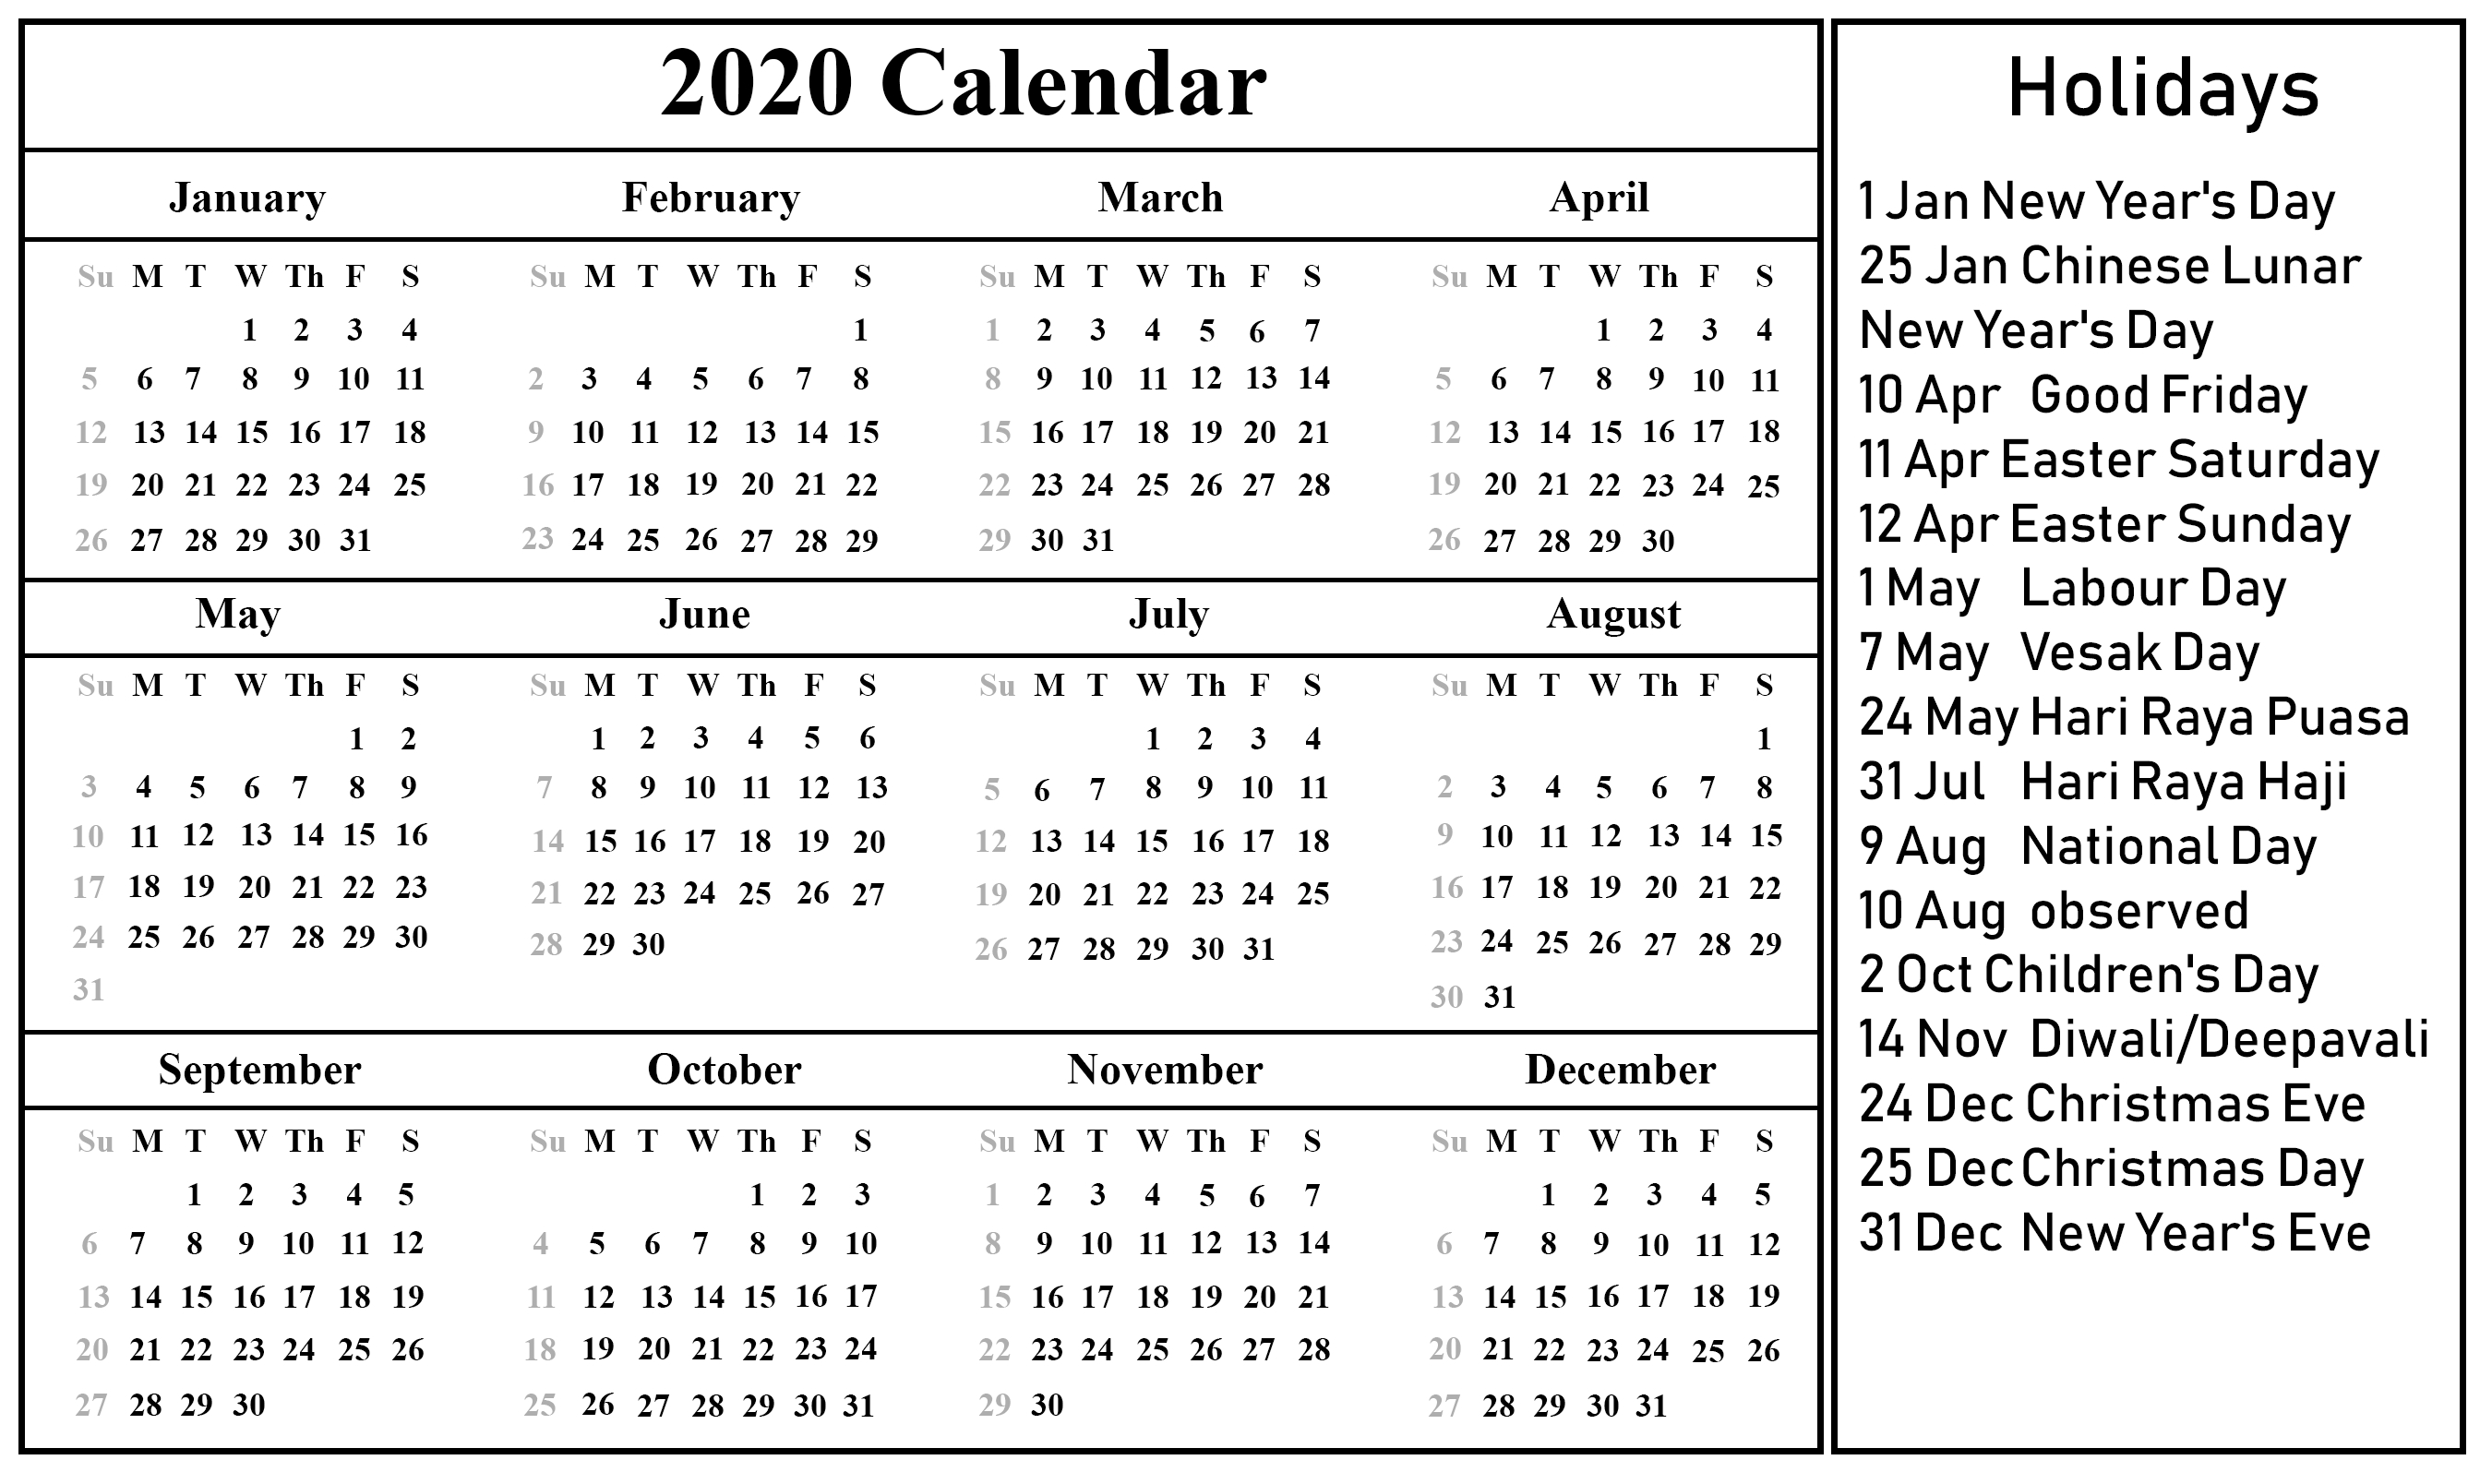 Full List Of March Holidays 2020 Calendar With Festival with regard to National Day Calendar 2020 Printable List